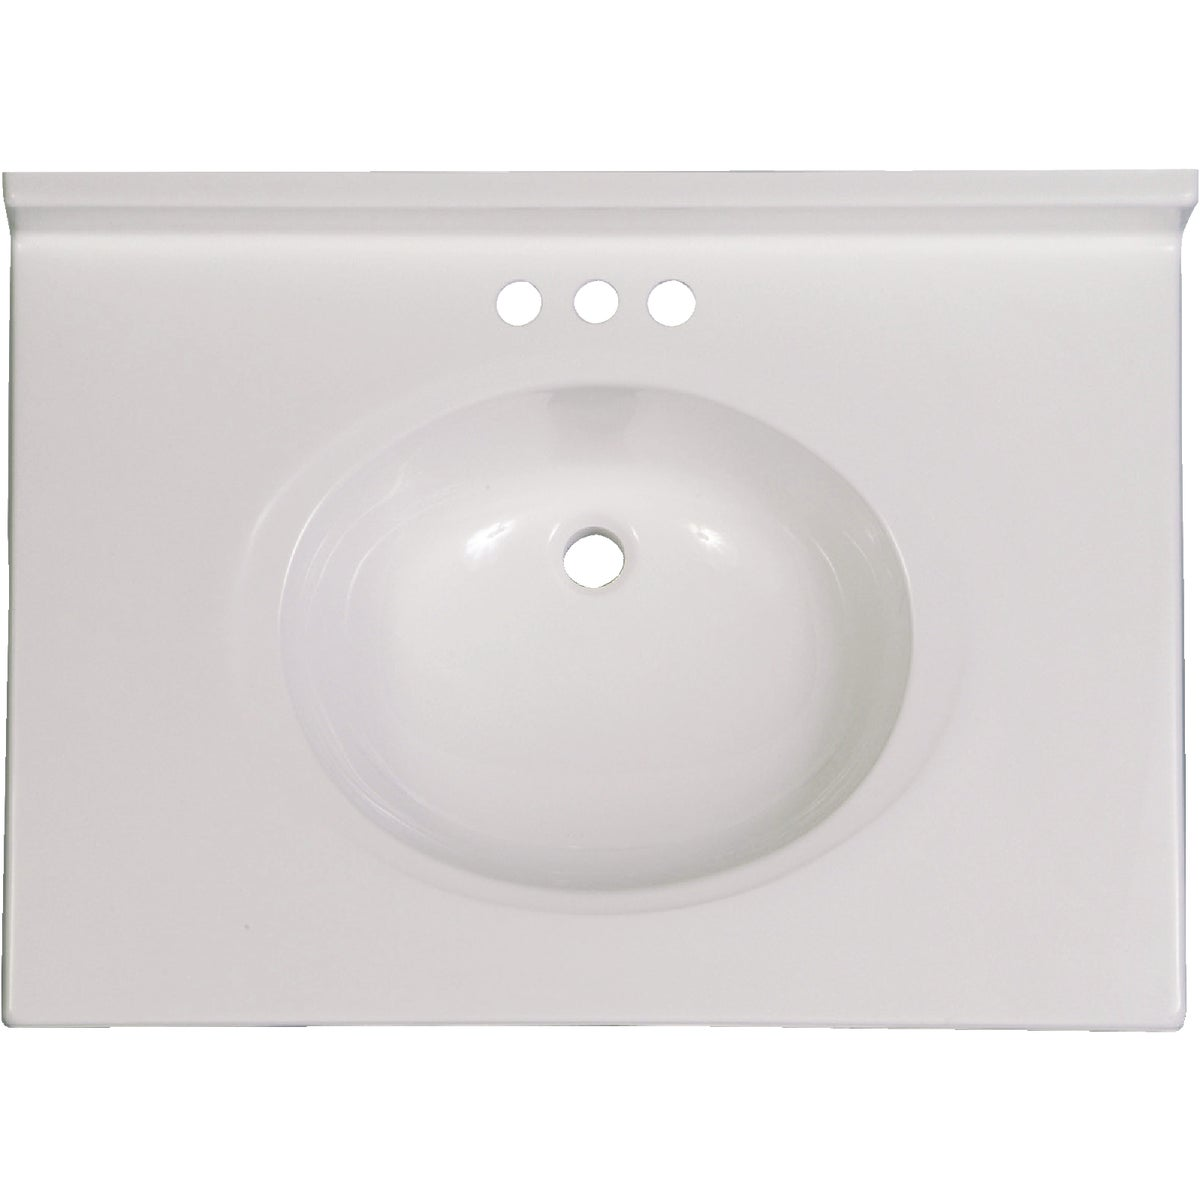 31X22 WHT VANITY TOP - VC3122SPW by Imperial Marble Corp